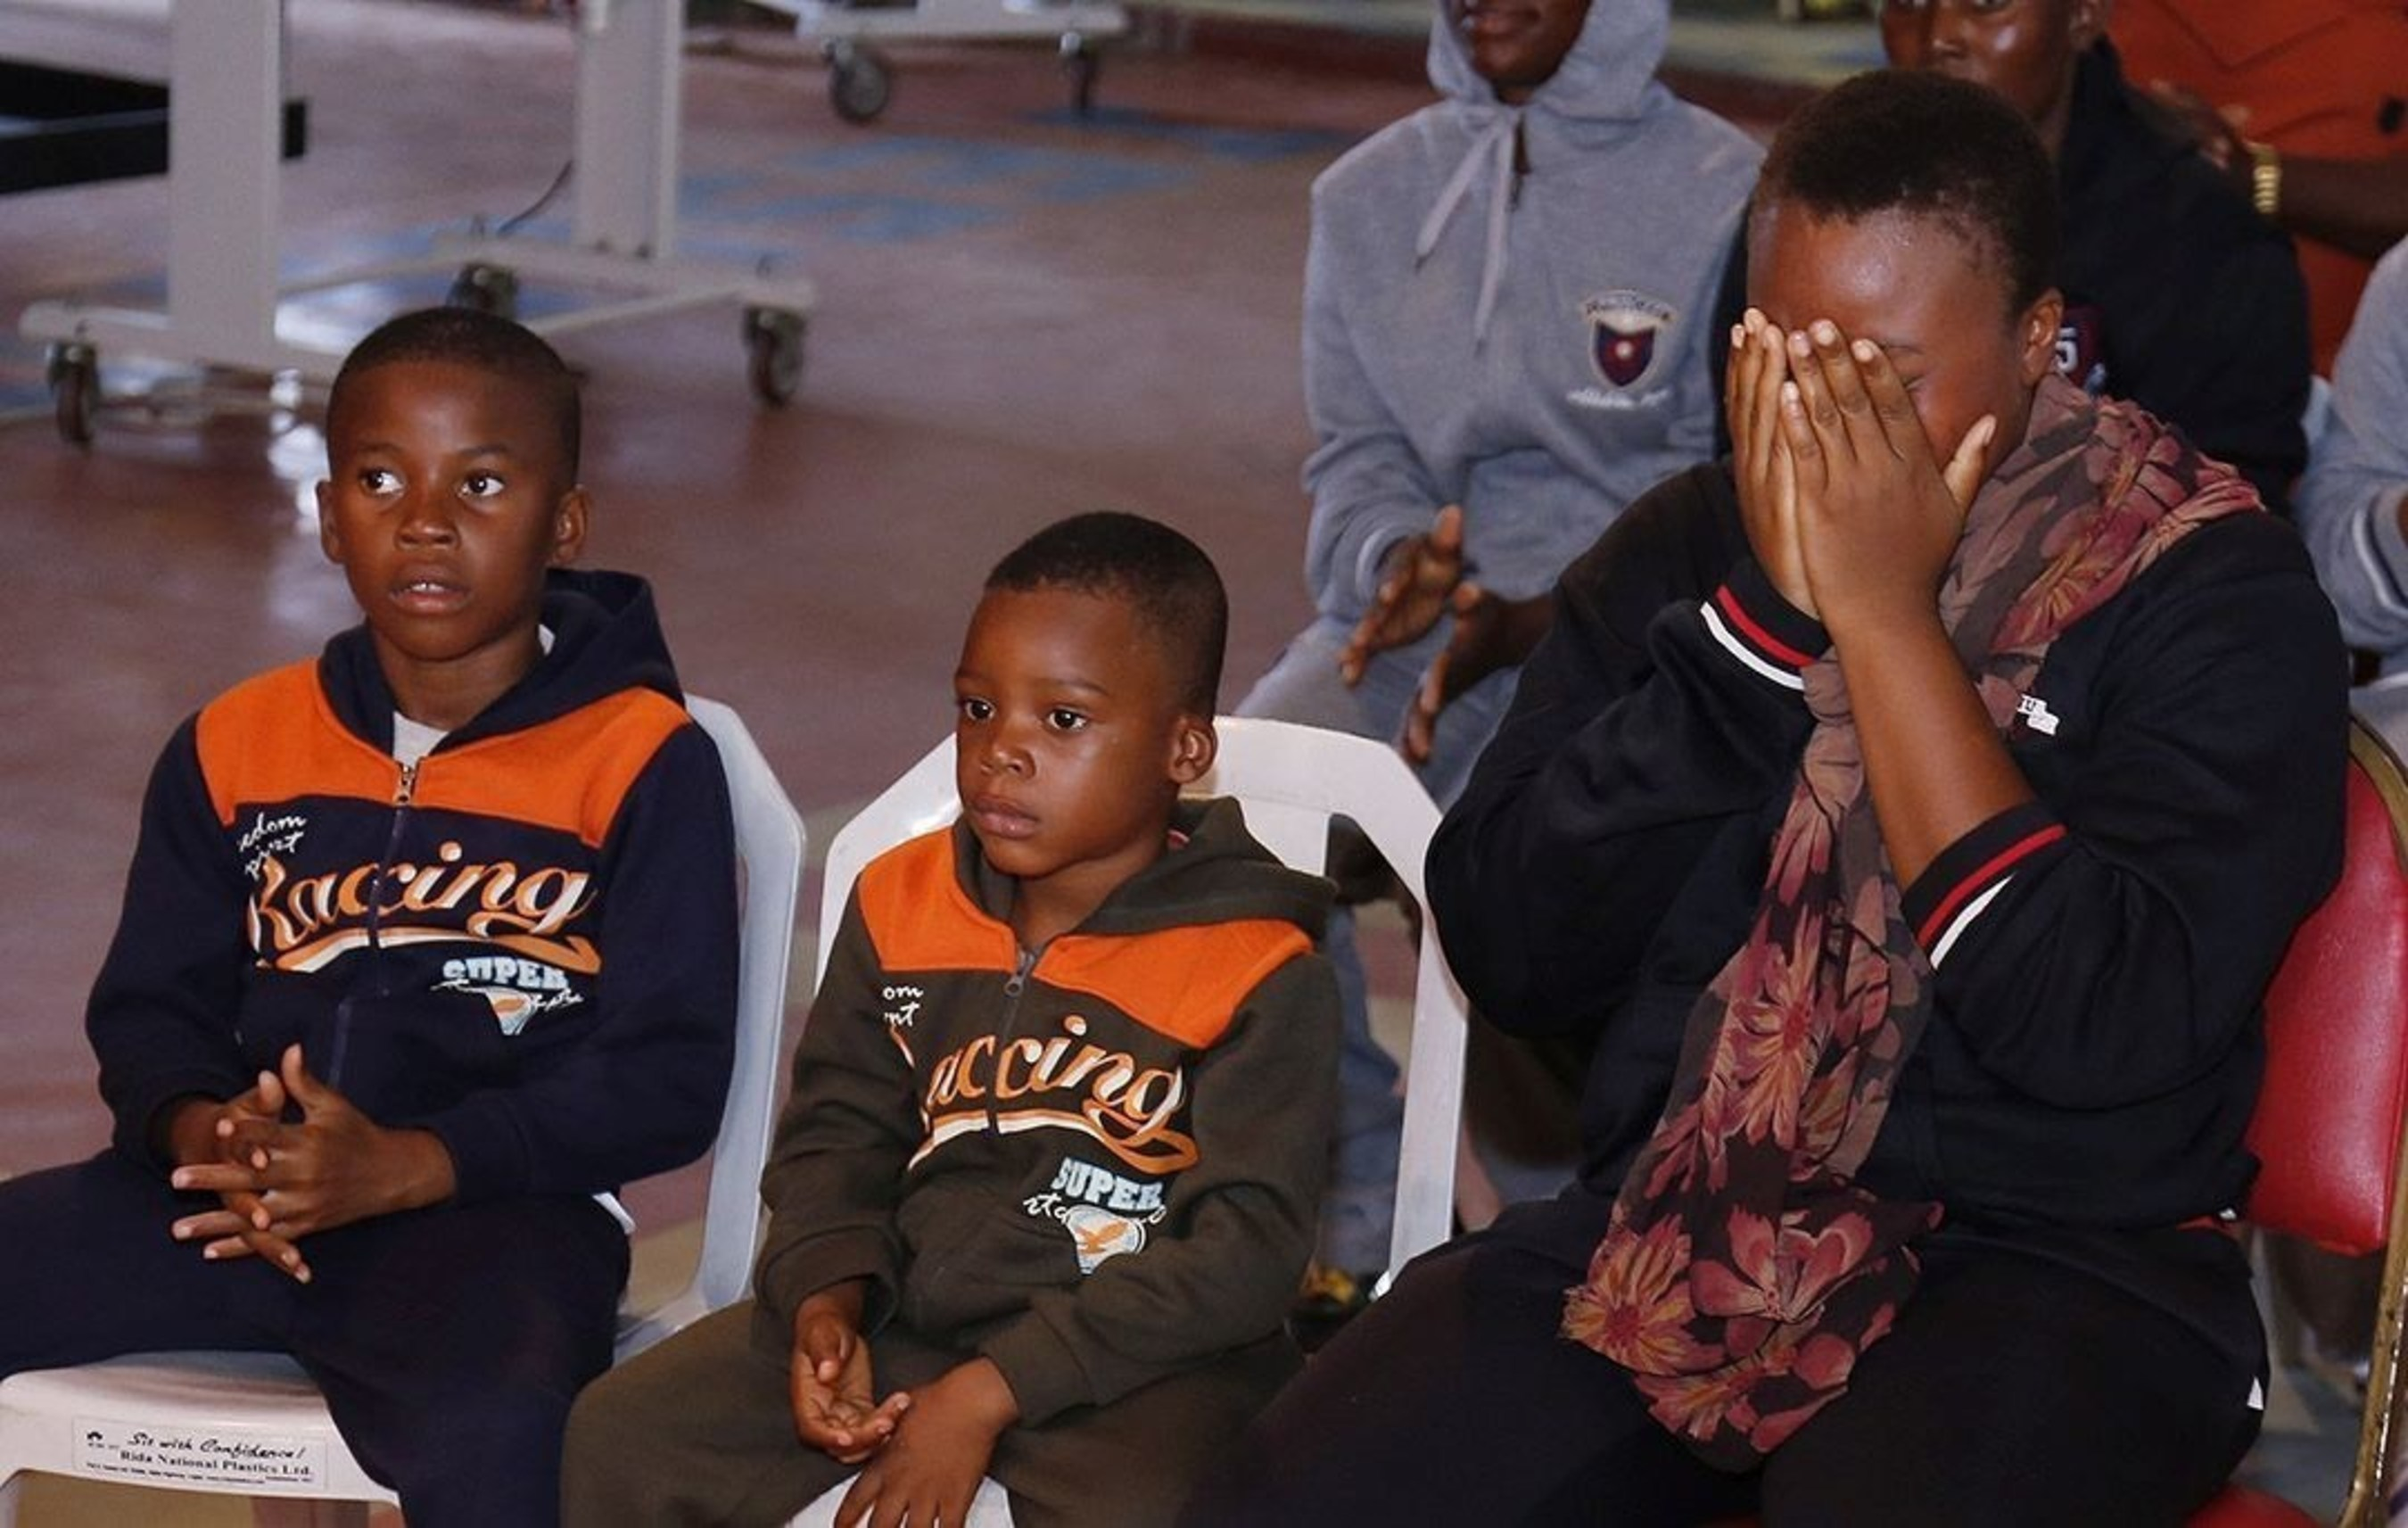 Precious Chioma cries as she recounts the ordeal she passed through with her two sons in their attempt to illegally travel to Europe from Nigeria. She sold all of her possessions to finance the trip but ended up in a Libyan prison after she was caught with her children hiding in suffocating conditions inside a watermelon truck. (PRNewsFoto/Emmanuel TV)